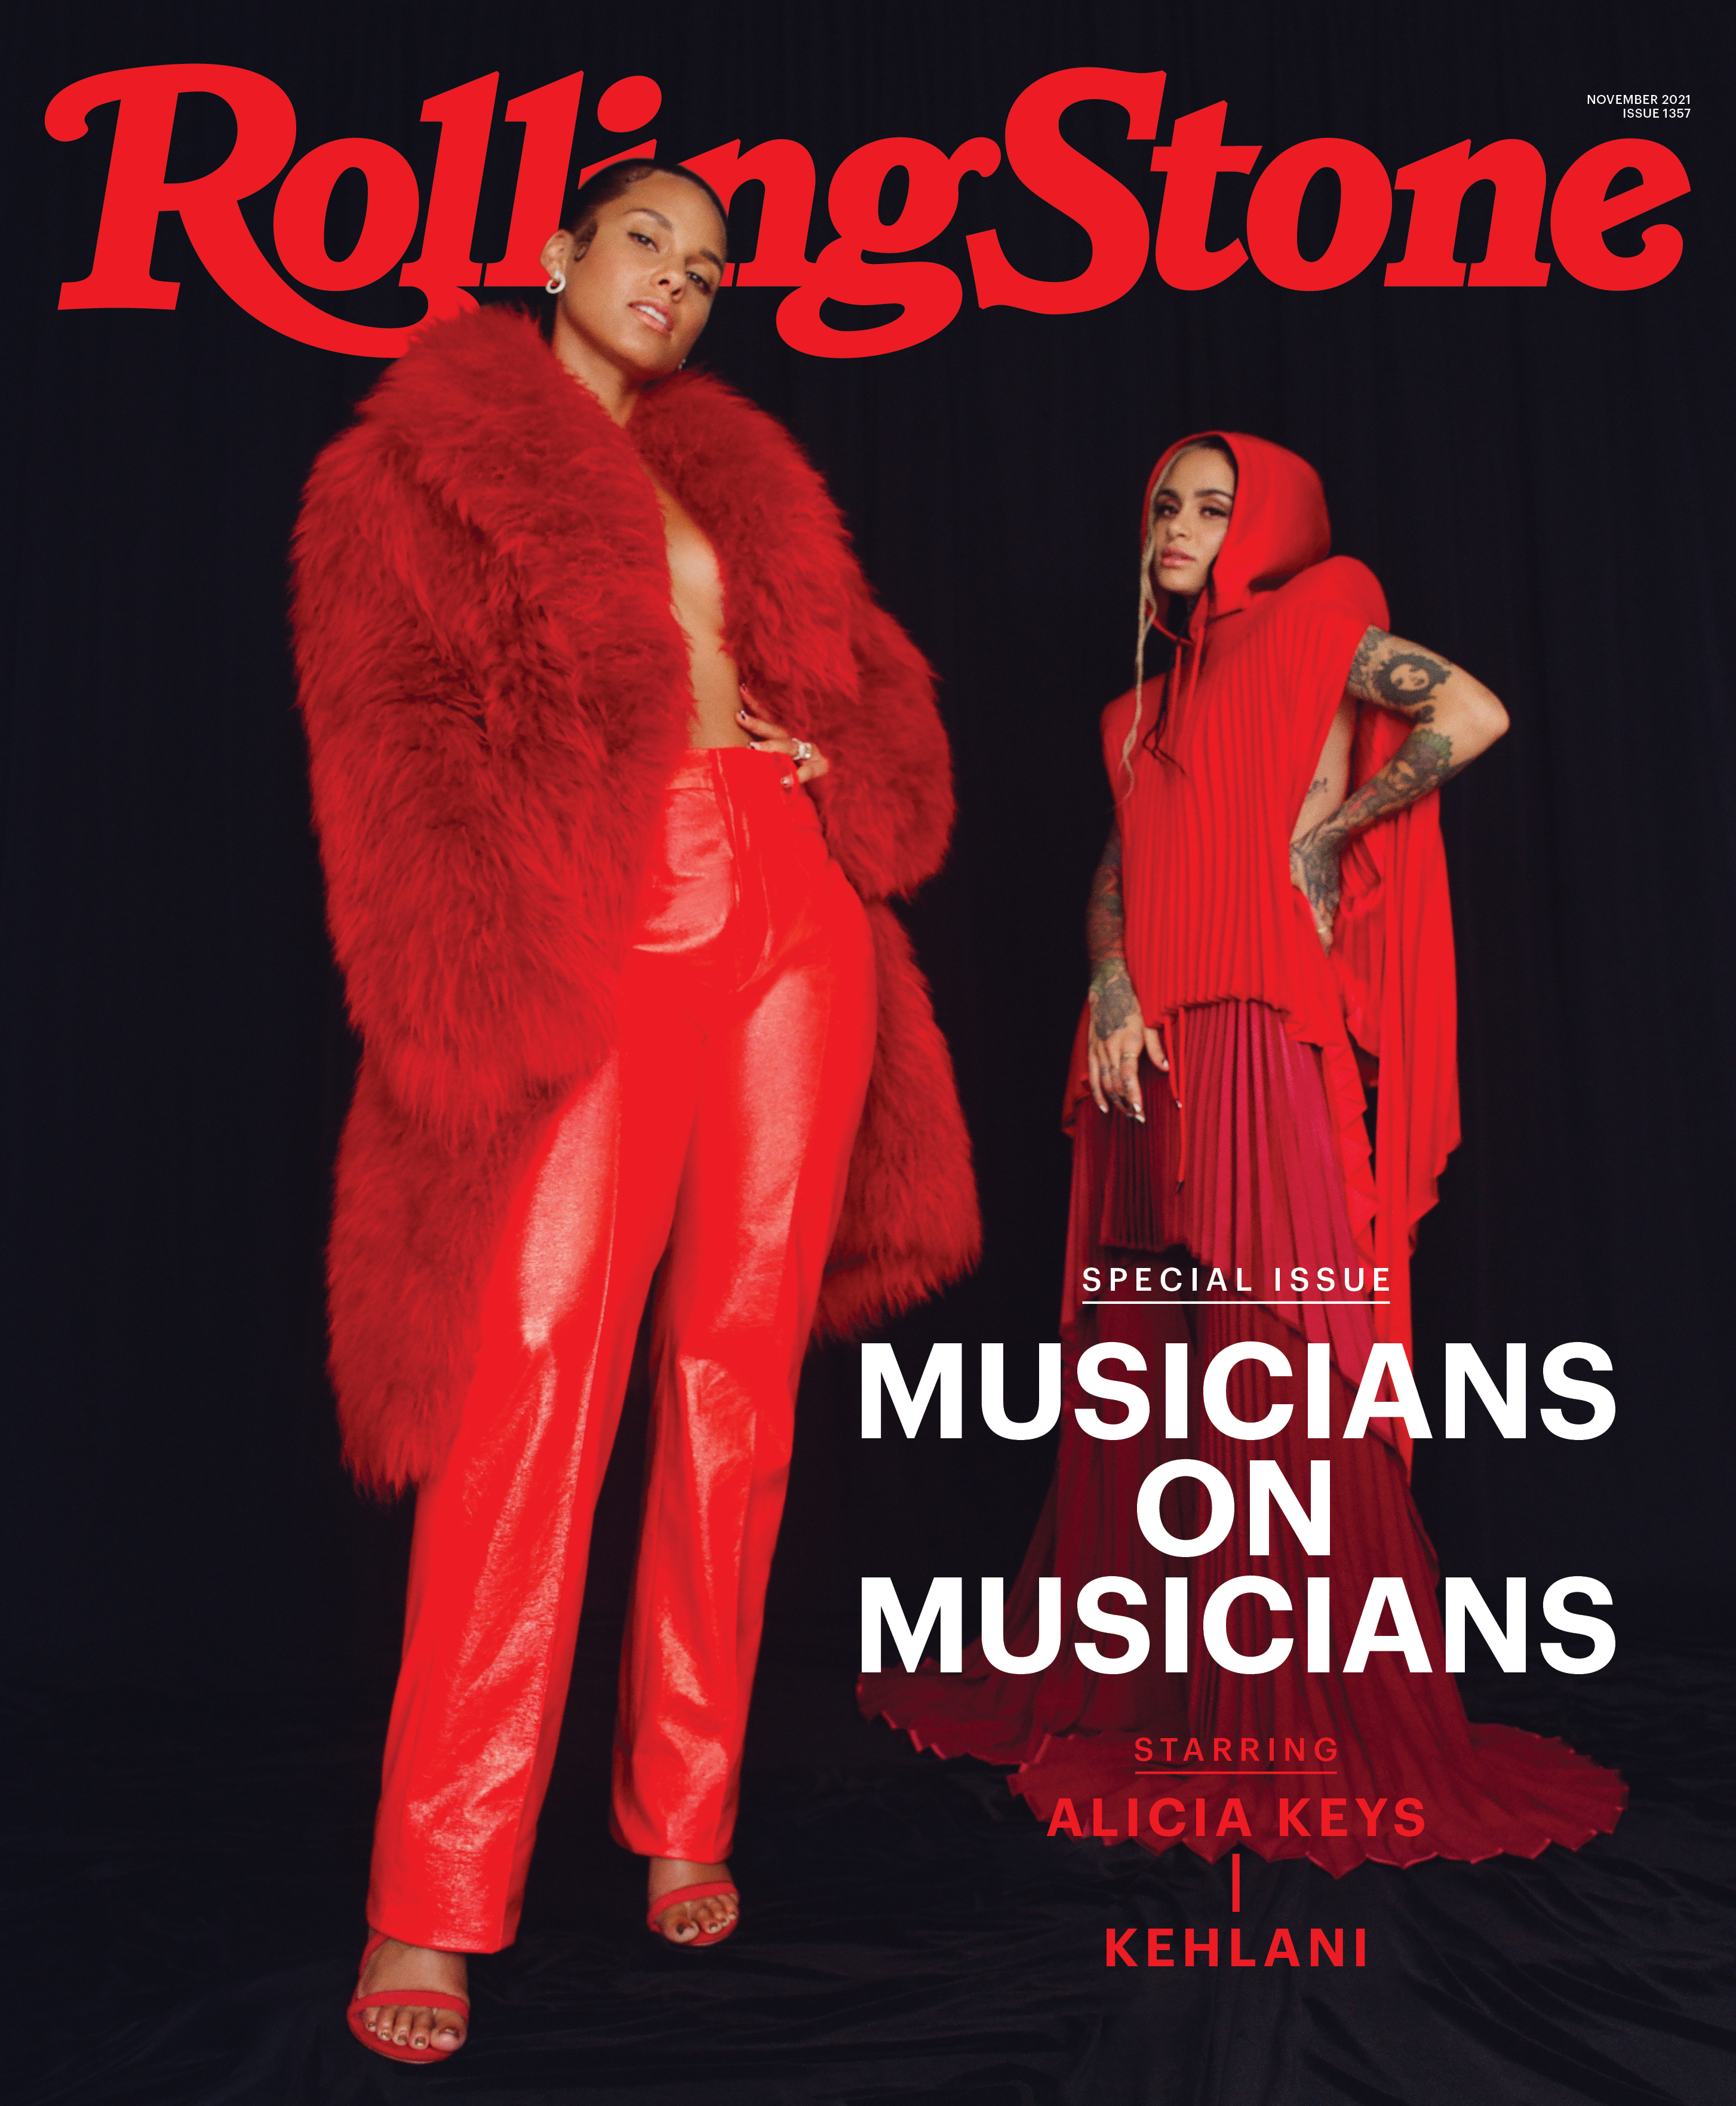 Alicia Keys & Kehlani photographed exclusively for Rolling Stone's Musicians on Musician's 2021 portfolio in Los Angeles CA on August 31st 2021 by Kanya Iwana